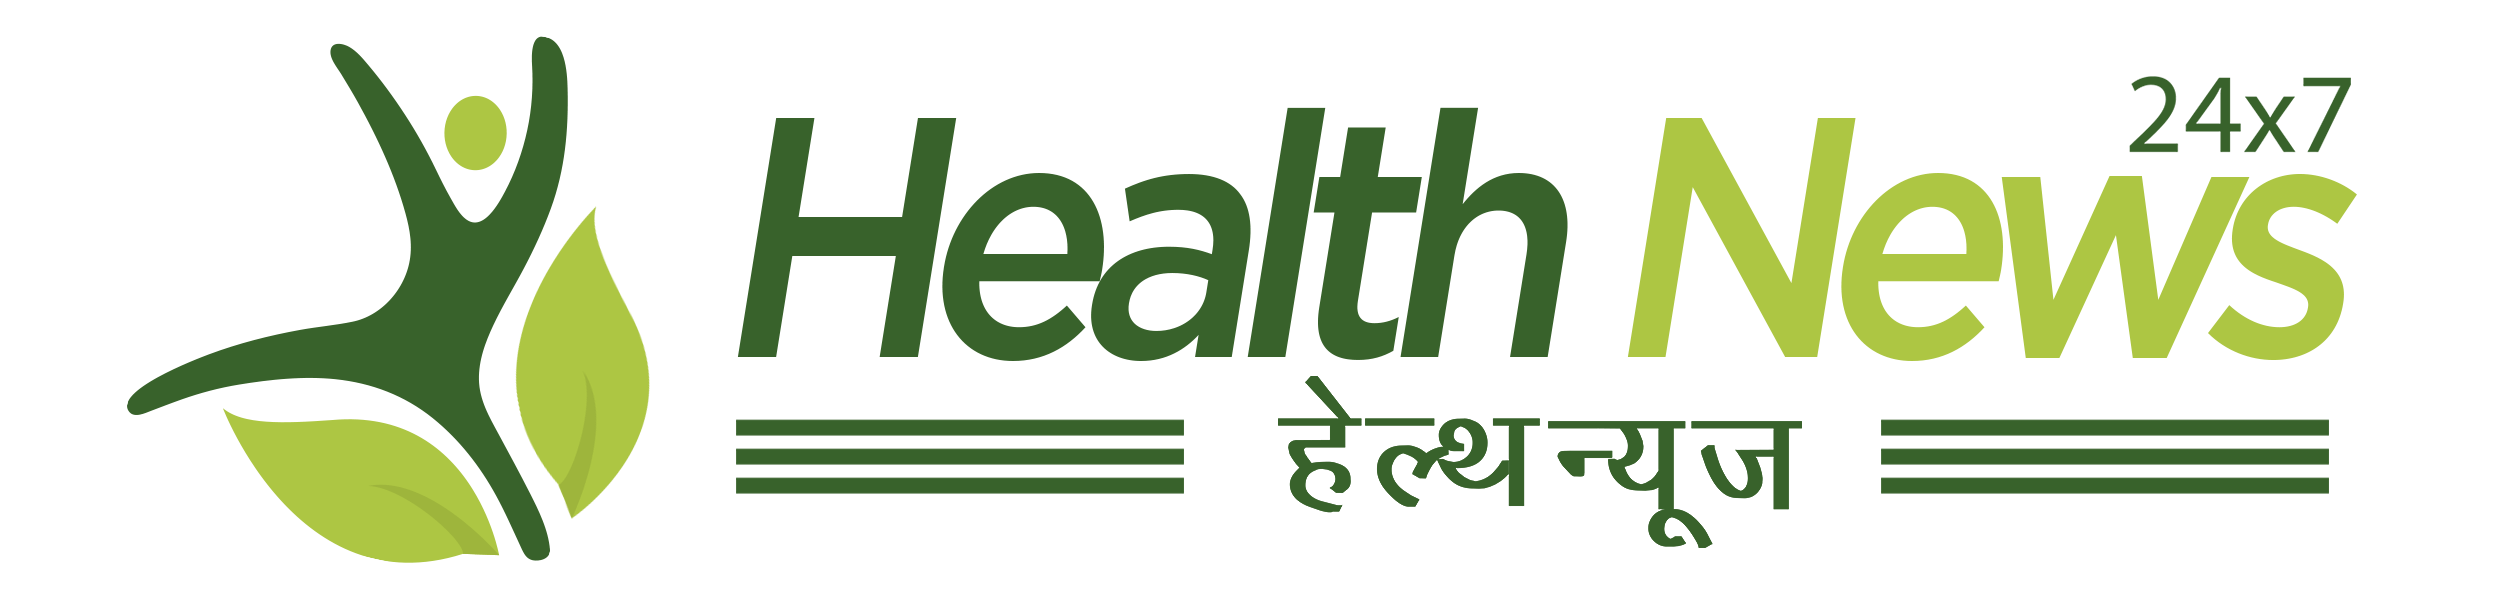 HealthNews24Seven